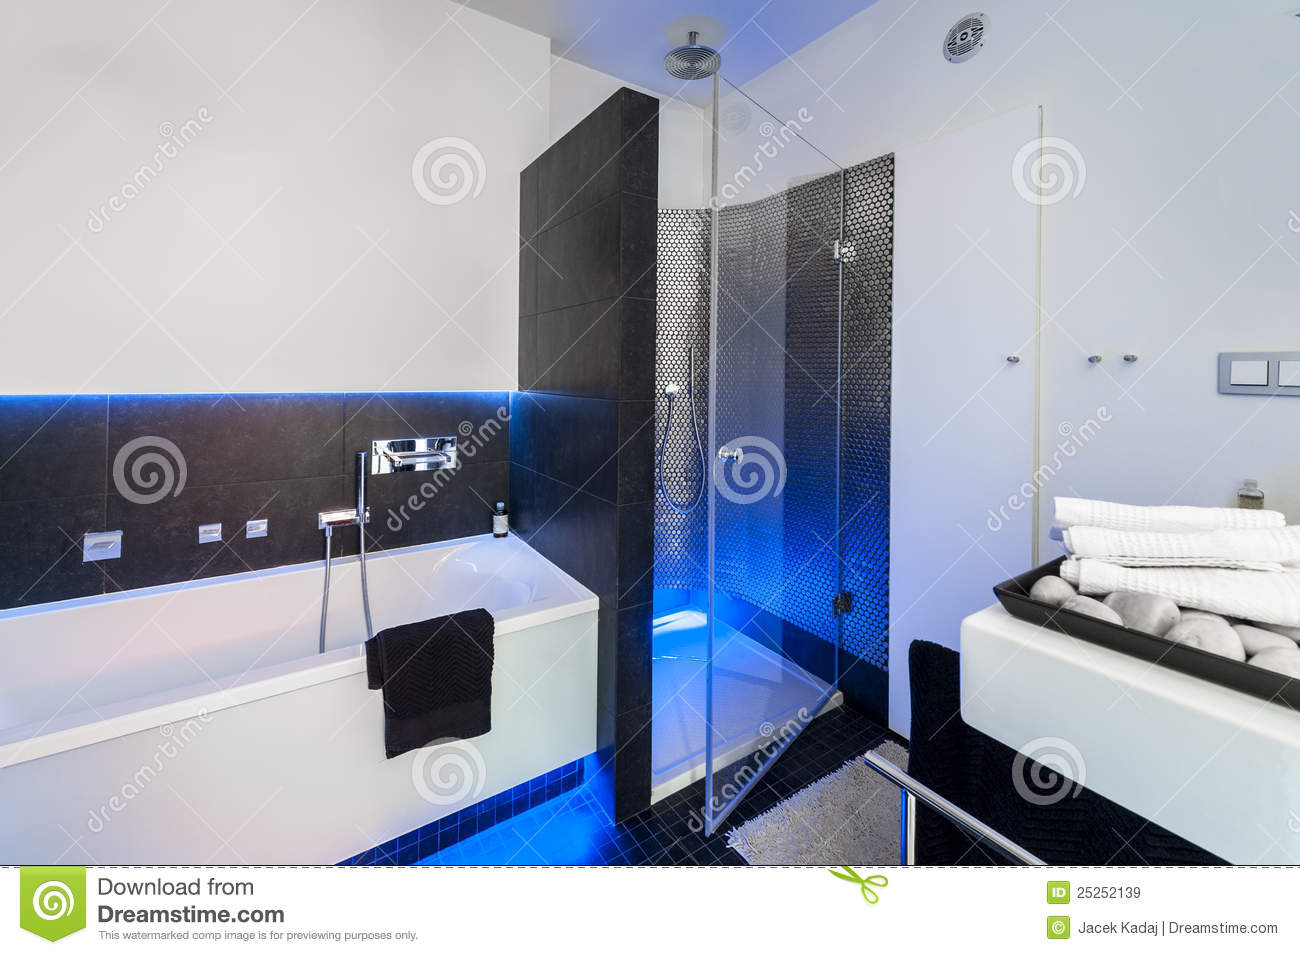 salle de bains moderne avec la douche images libres de. Black Bedroom Furniture Sets. Home Design Ideas